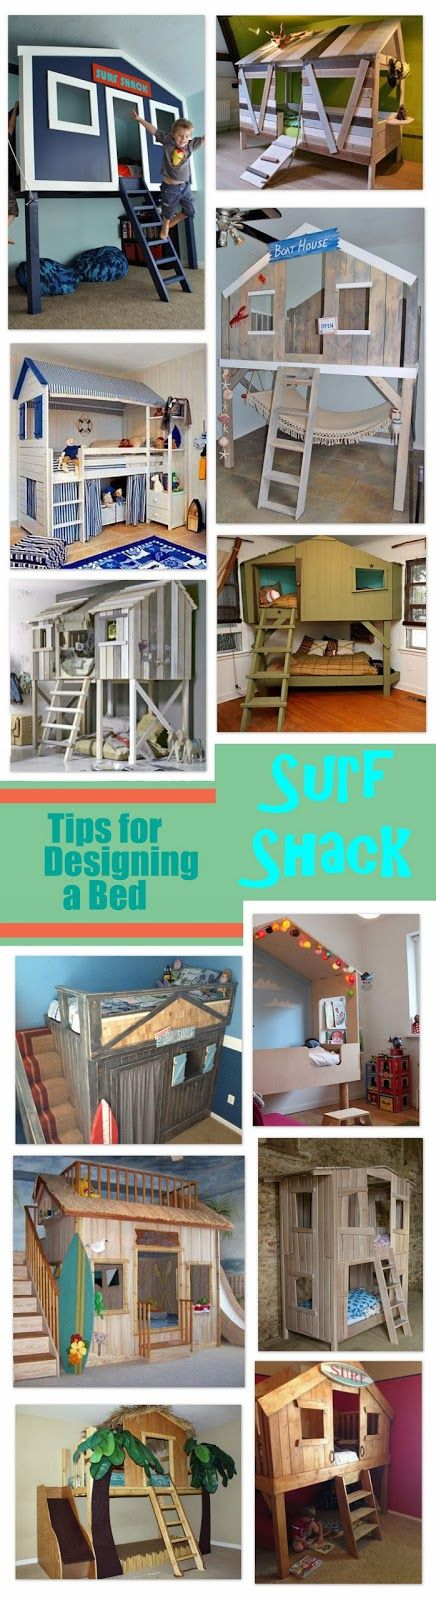 Designing a Surf Shack Bed. Good idea for the little boy...when he gets older!